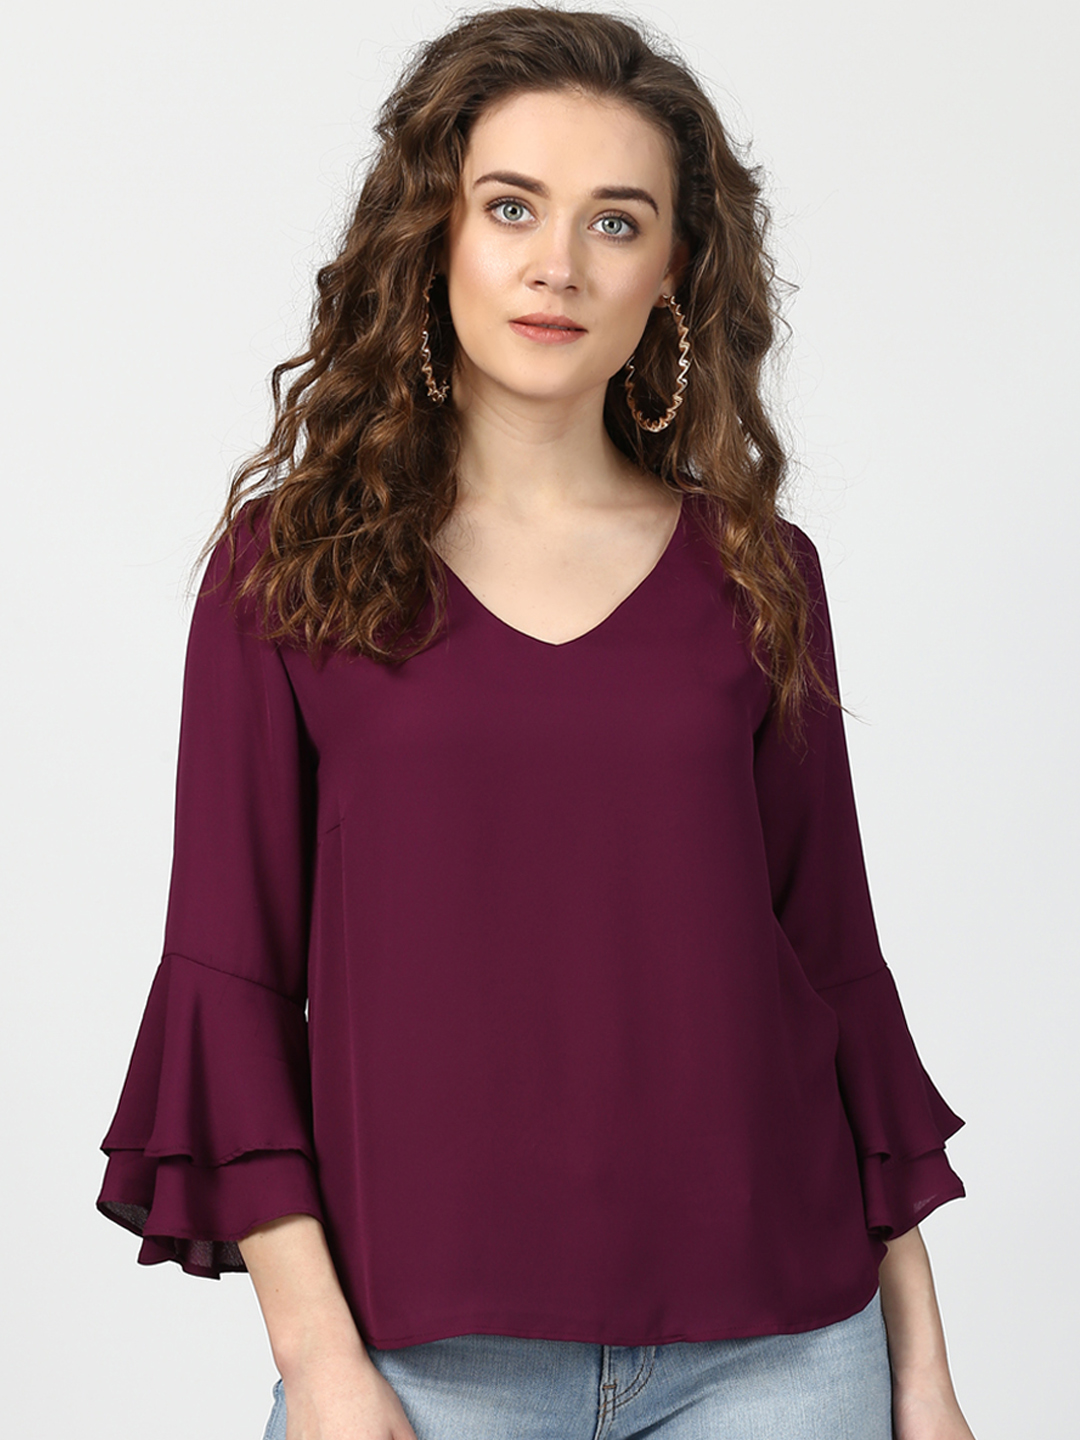 Tops for Women ladies tops - buy tops u0026 t-shirts for women online | myntra ZYVDSOB